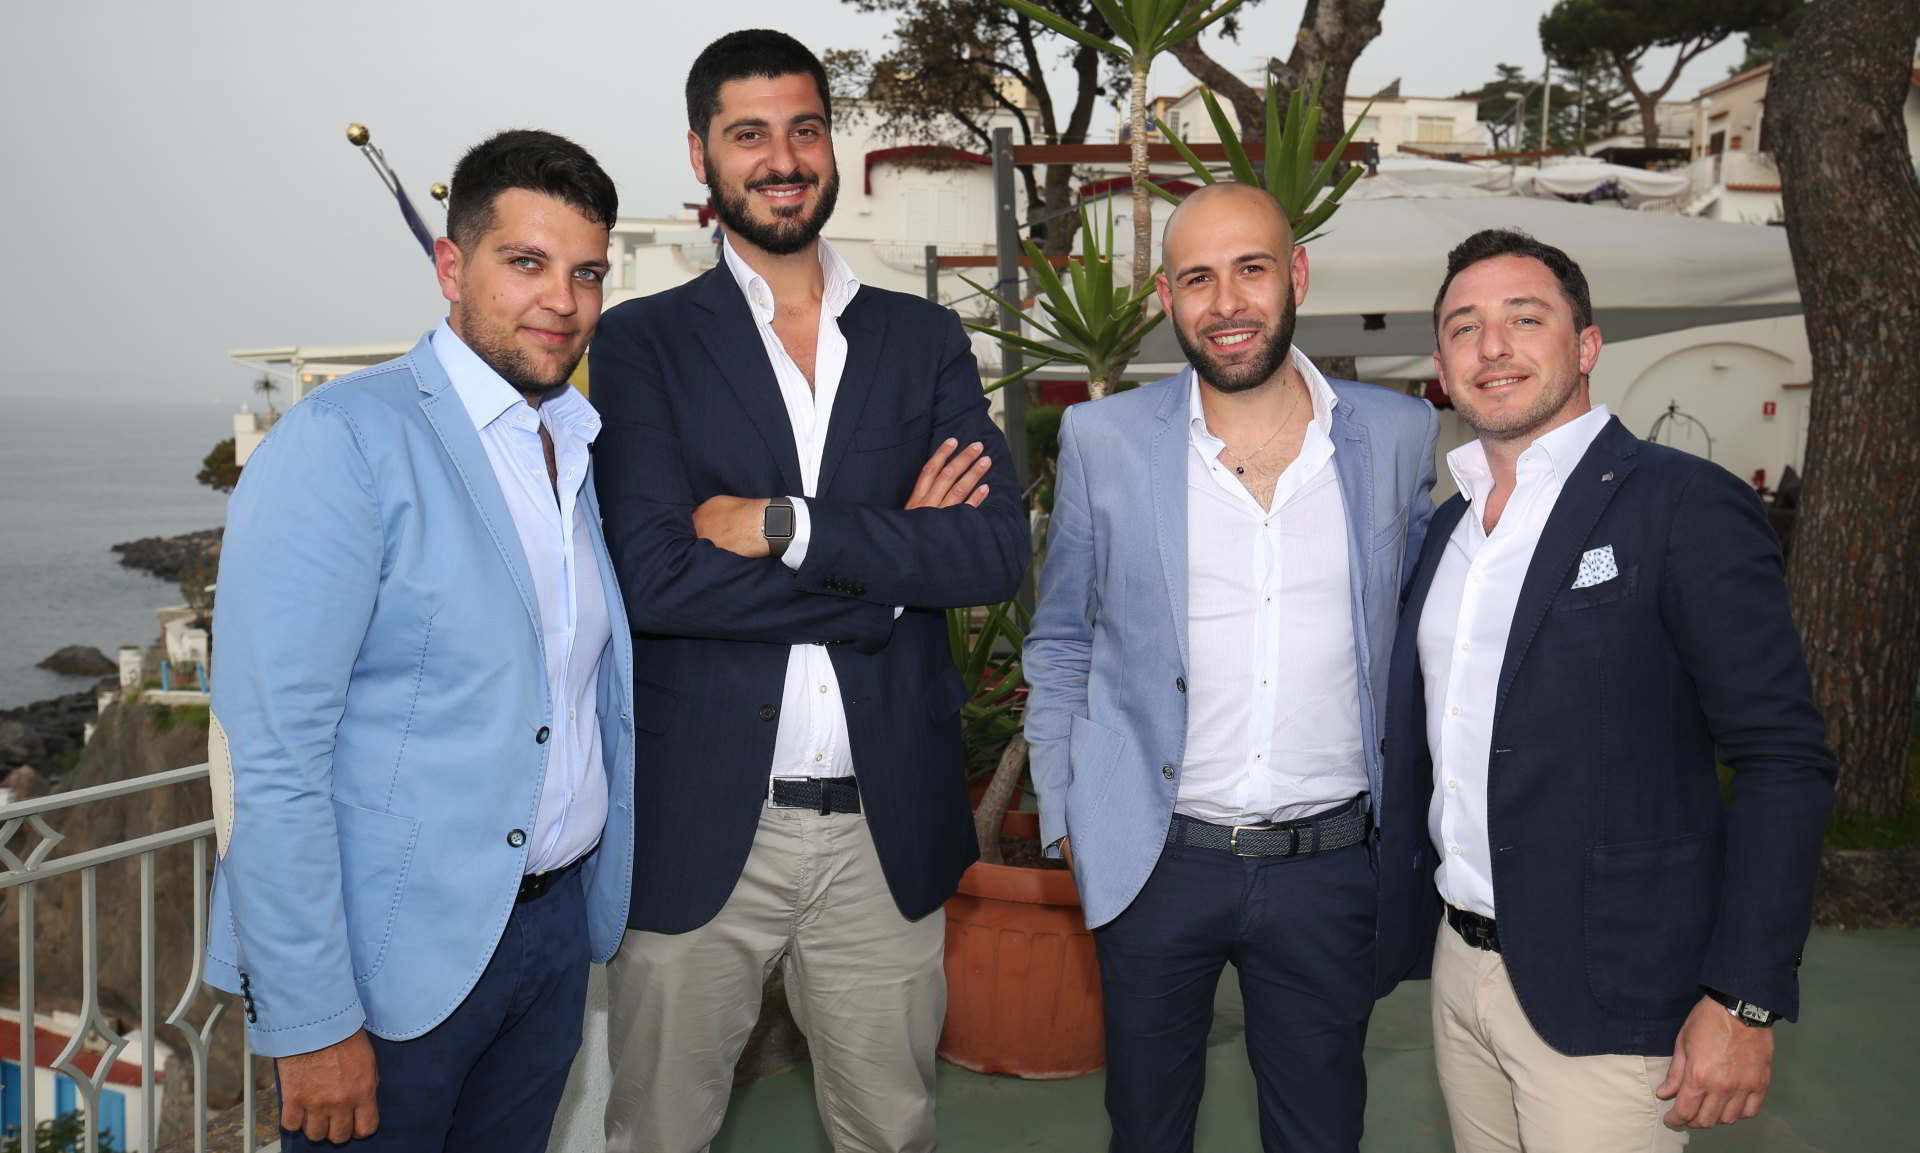 Il team ItalianEat